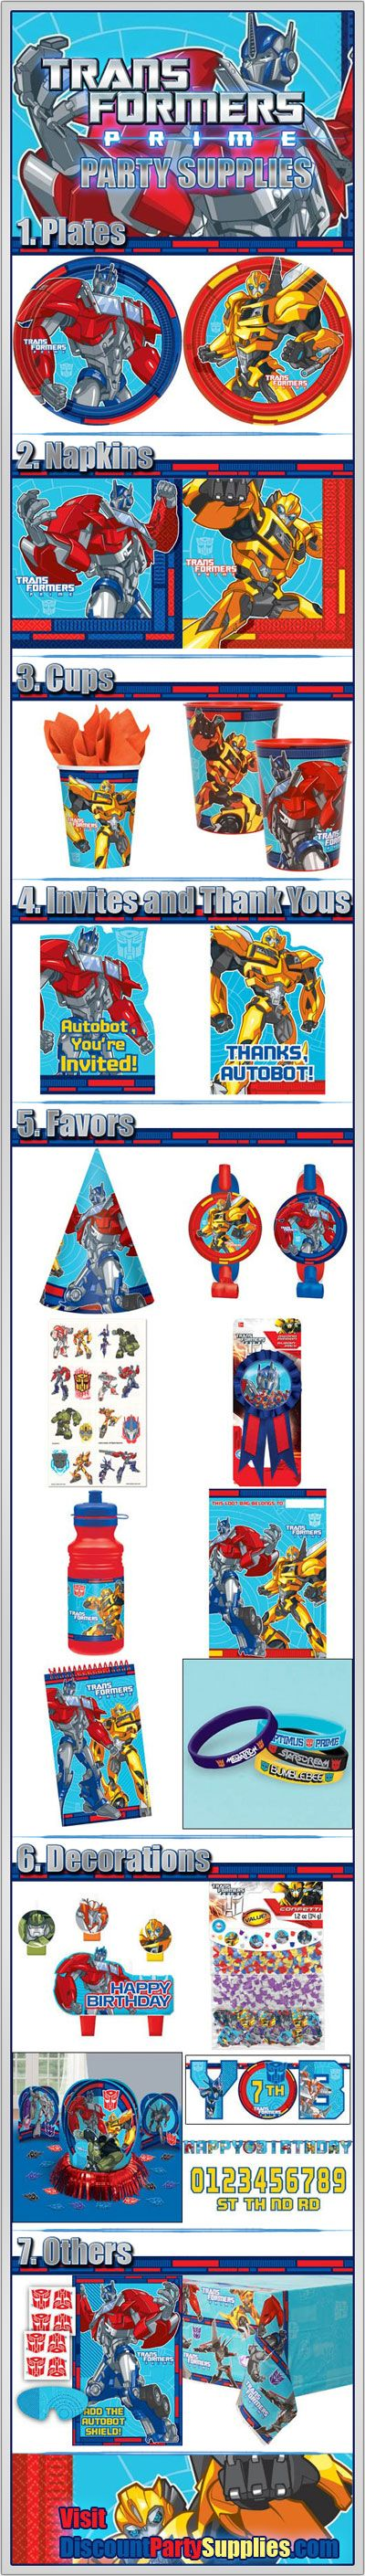 #Transformers Party Supplies Receive a Prime Refresh! - This new Transformers Prime theme replaces the old Transformers 3 theme: http://www.discountpartysupplies.com/blog/2013/04/09/transformers-party-supplies-receive-a-prime-refresh/